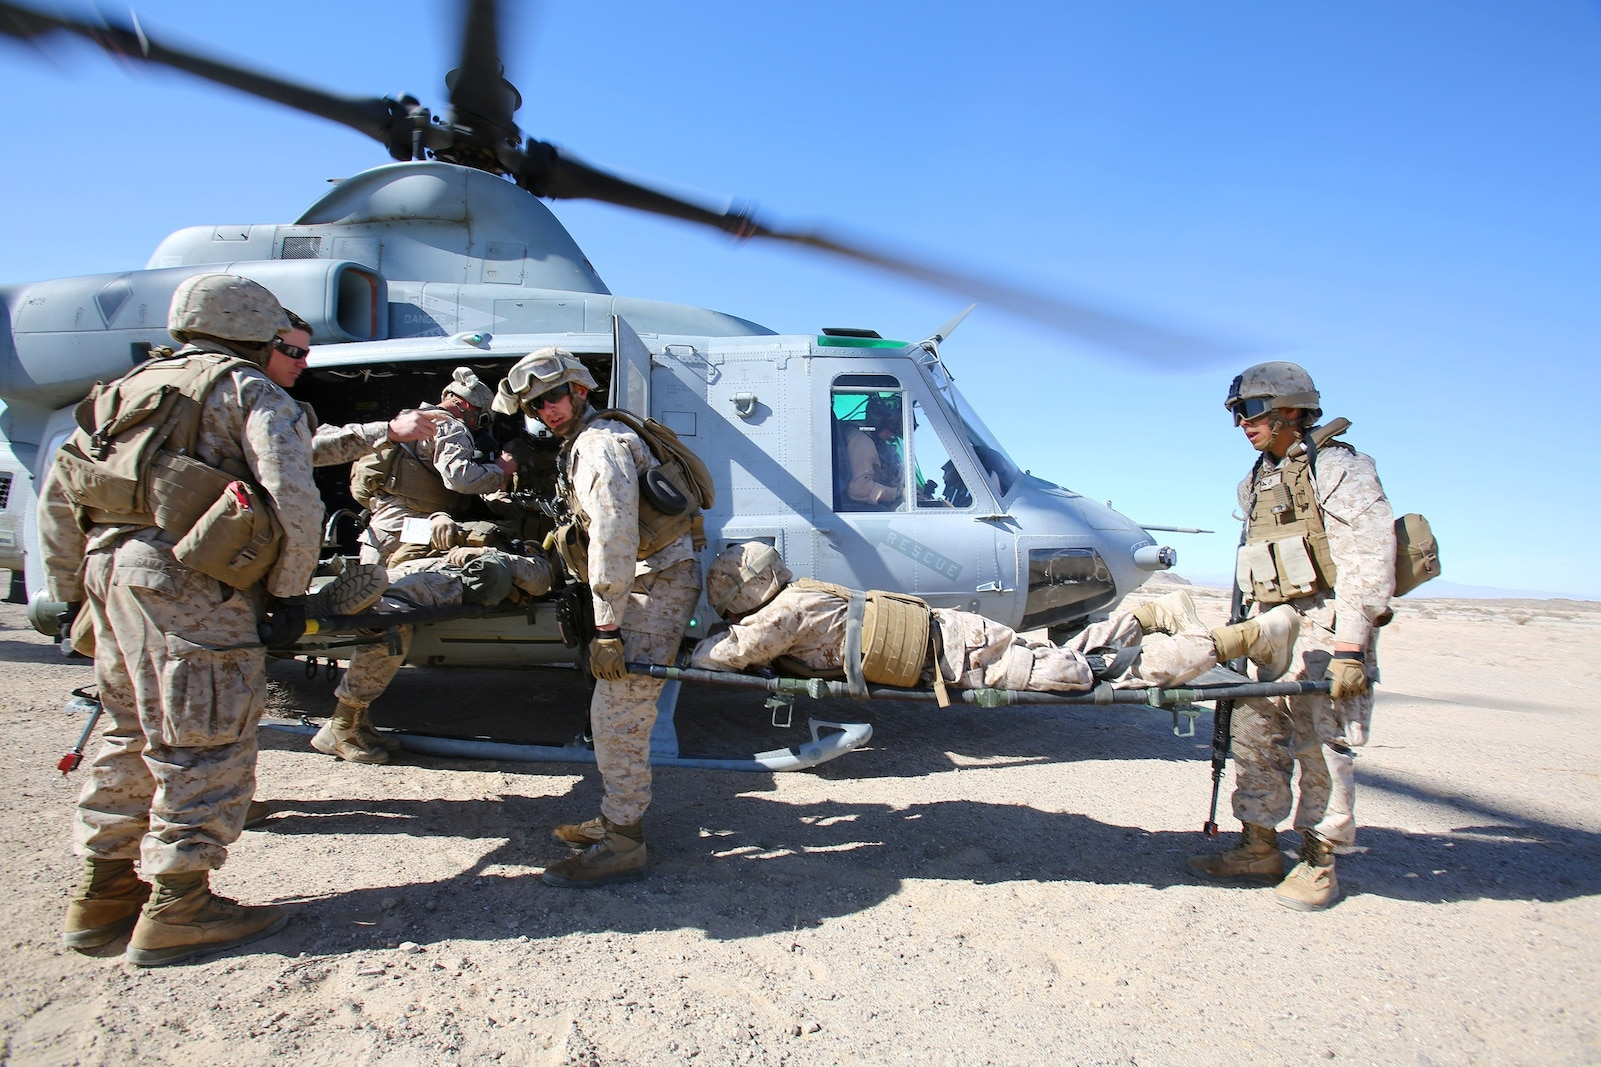 Marines and sailors with Combat Logistics Battalion 1, Combat Logistics Regiment 1, 1st Marine Logistics Group, evacuate a simulated casualty into a UH-1Y Huey during a Marine Readiness Exercise aboard Marine Corps Air Ground Combat Center Twenty-nine Palms, Calif., March 26, 2014. The MRX is part of the month-long Integrated Training Exercise 3-14 that prepares the battalion for its role as the logistics combat element in the final combat deployment of Operation Enduring Freedom.